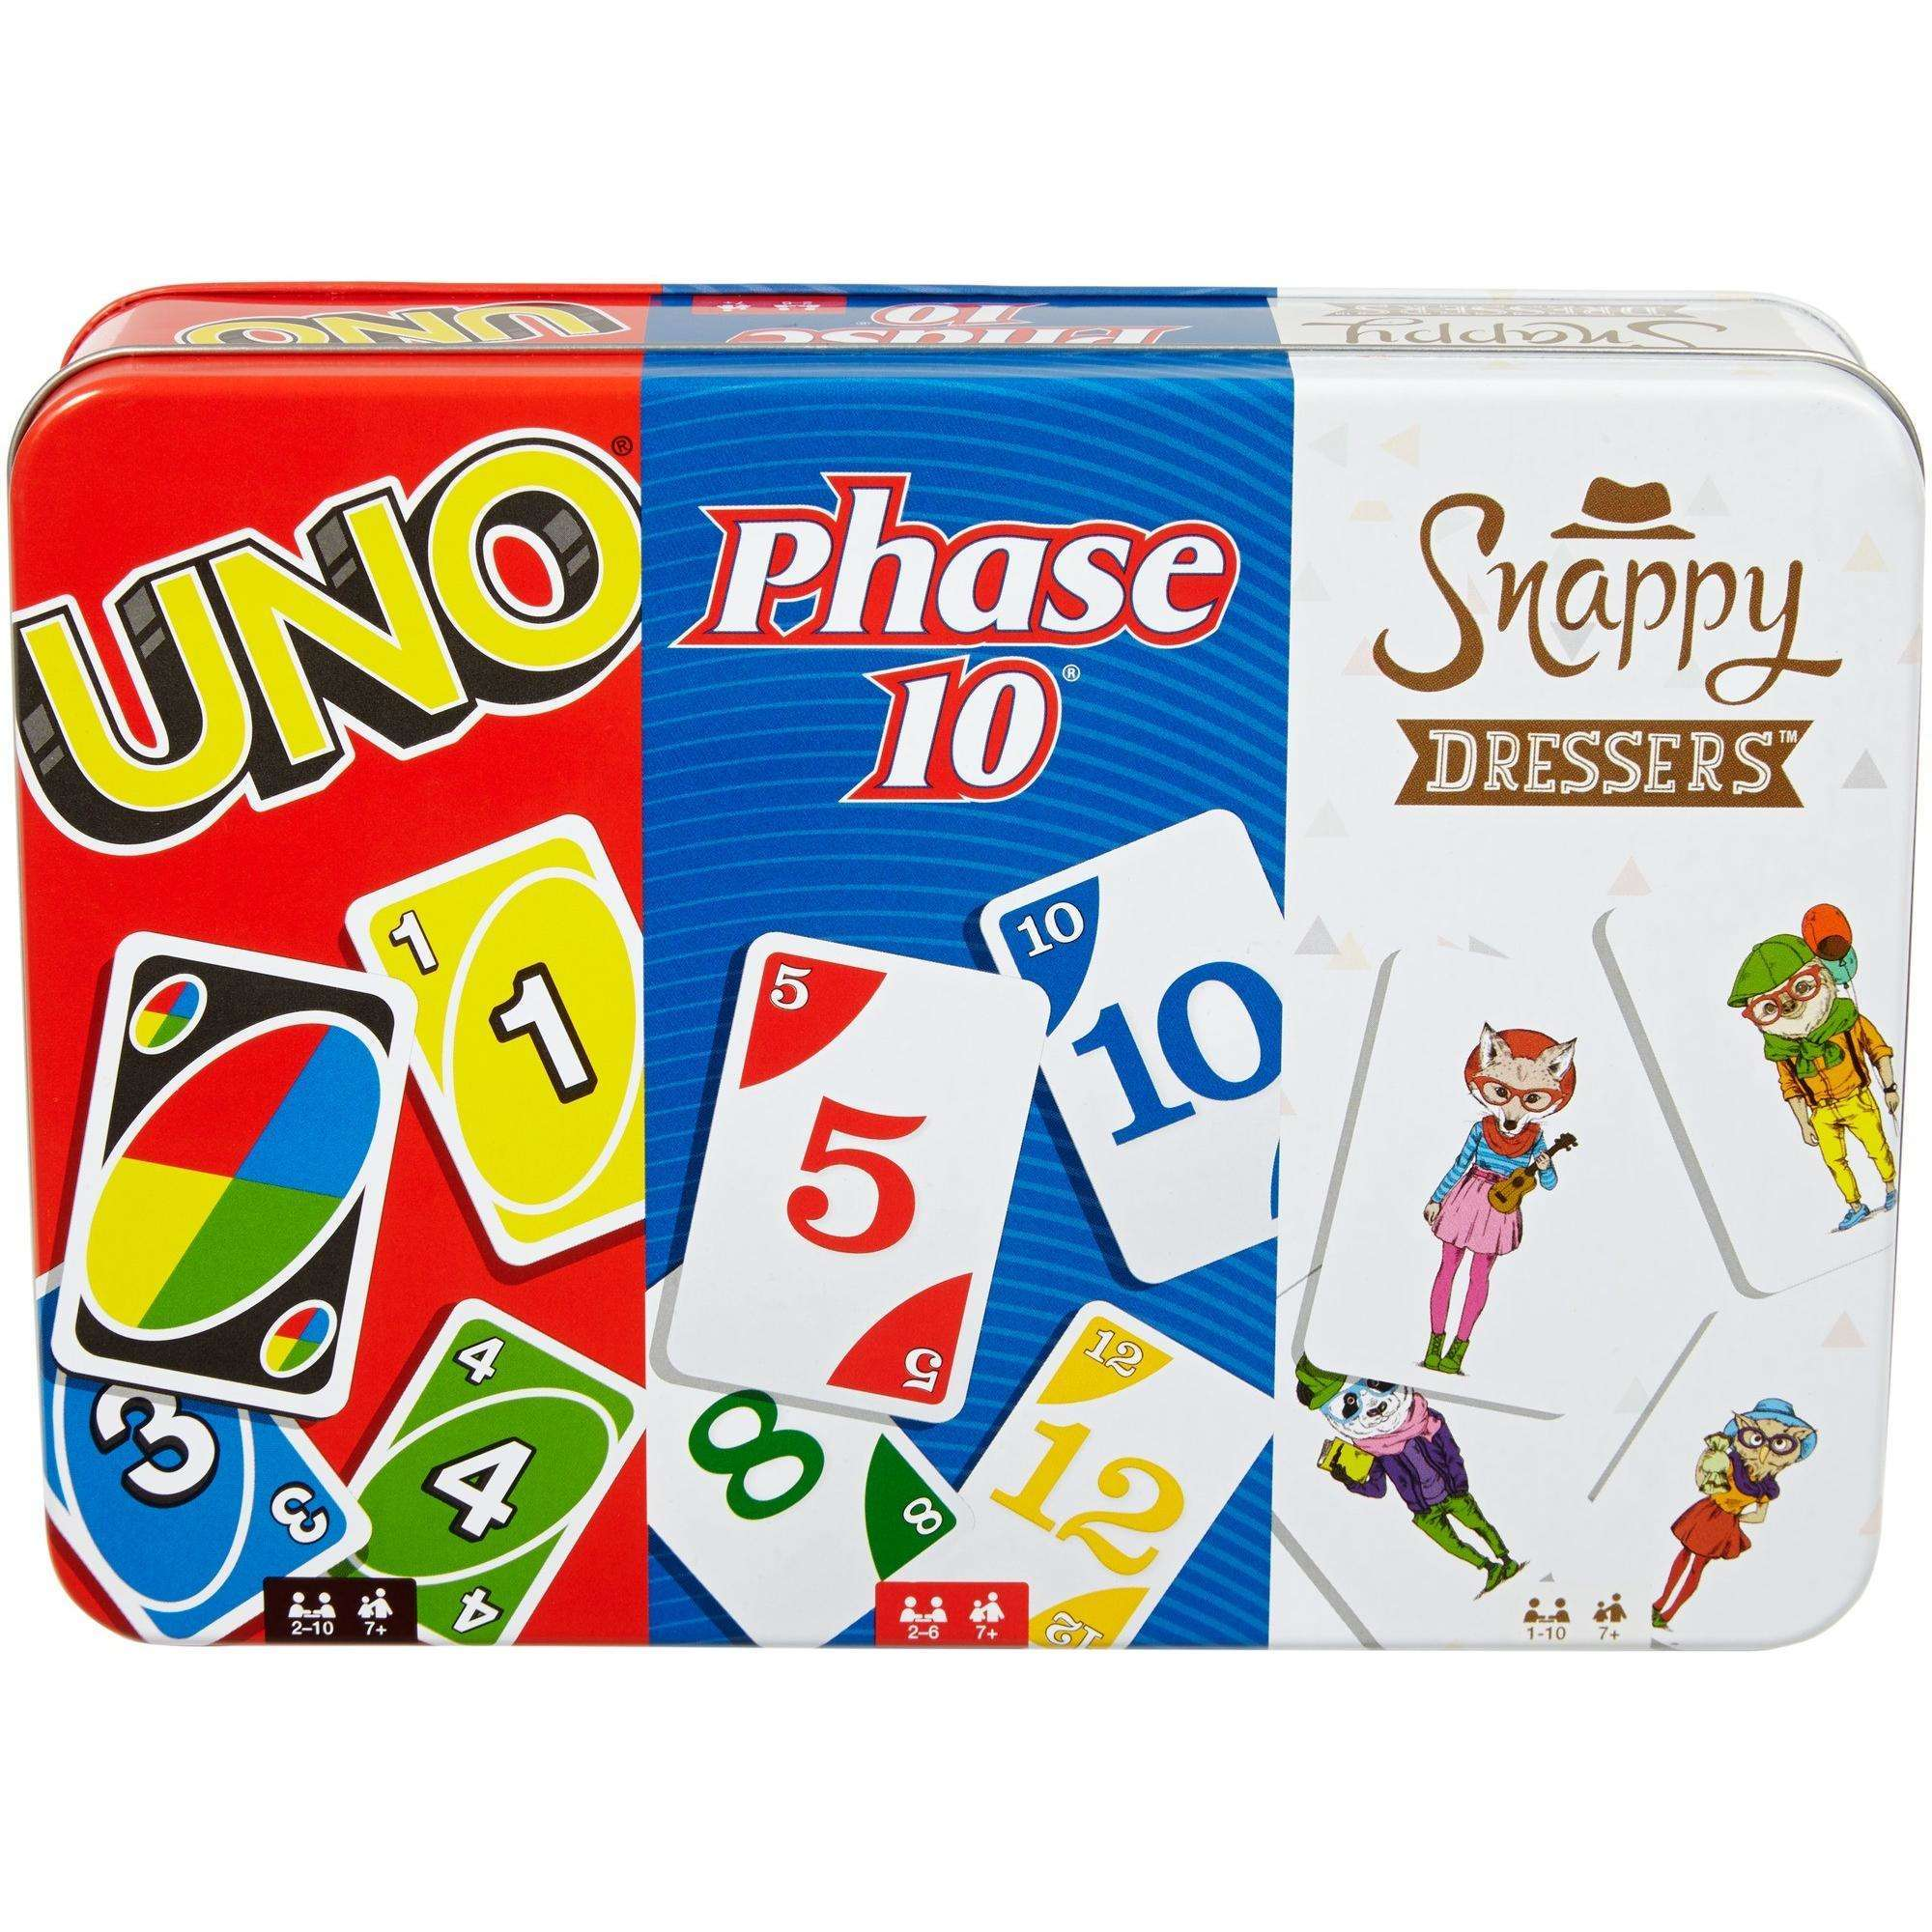 UNO, Phase 10, and Snappy Dressers Collector Tin